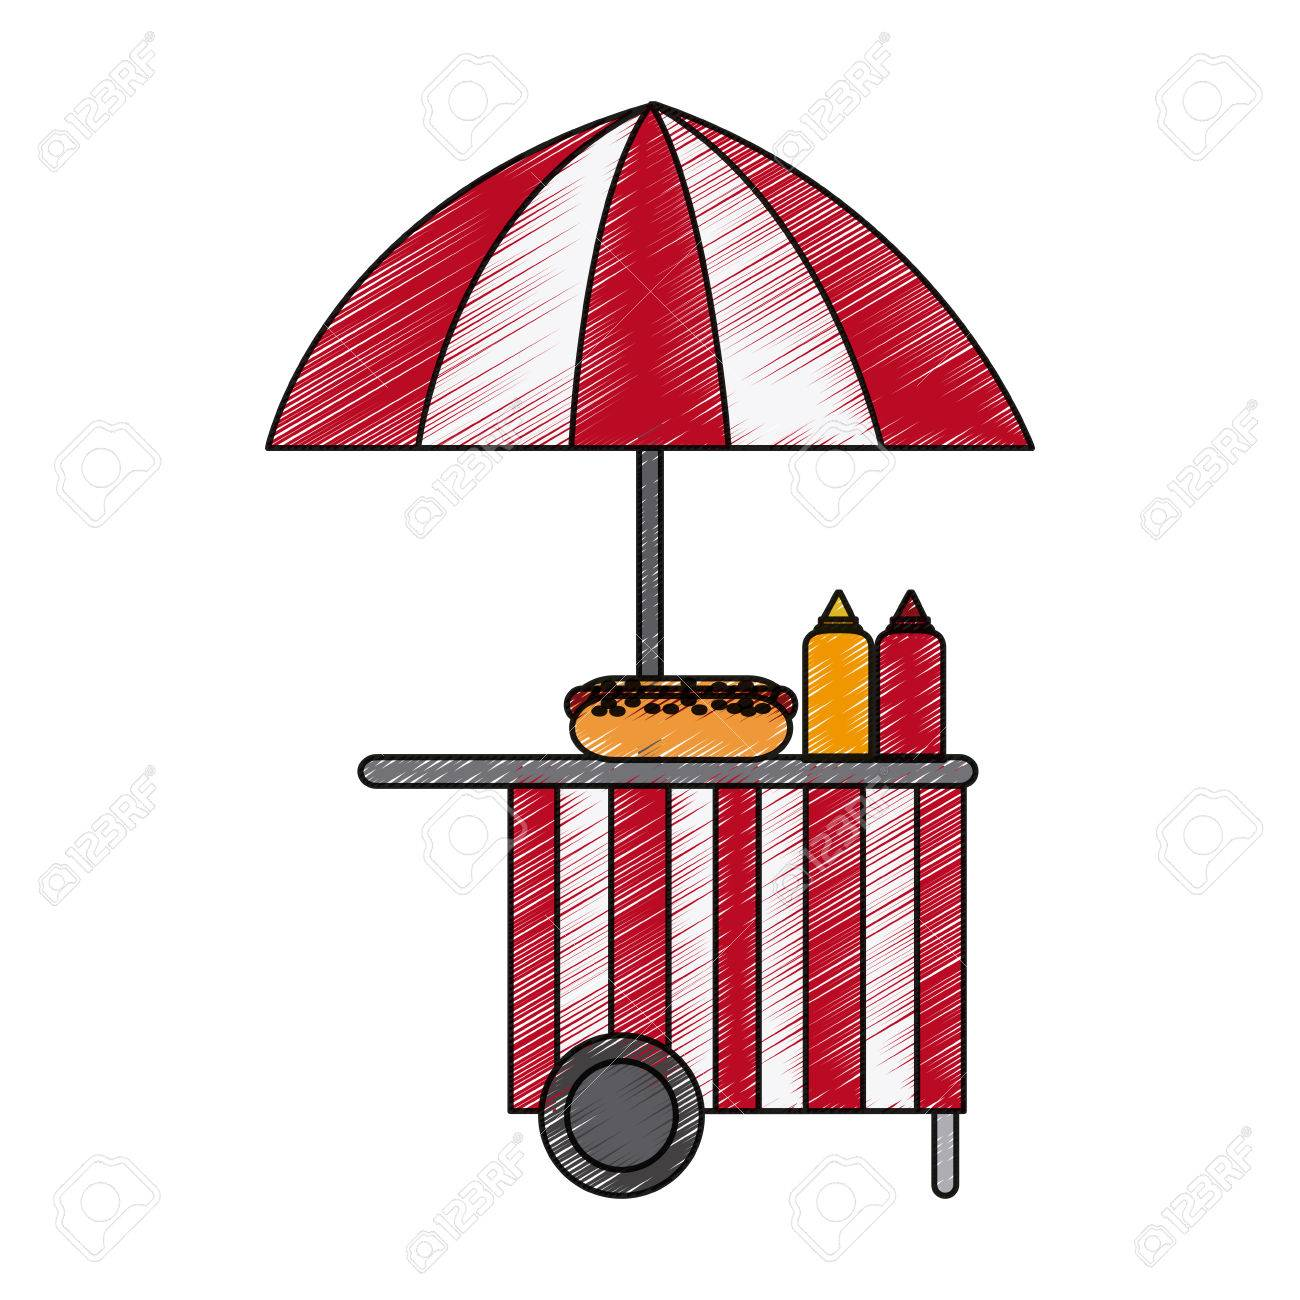 street food stand icon image vector illustration design